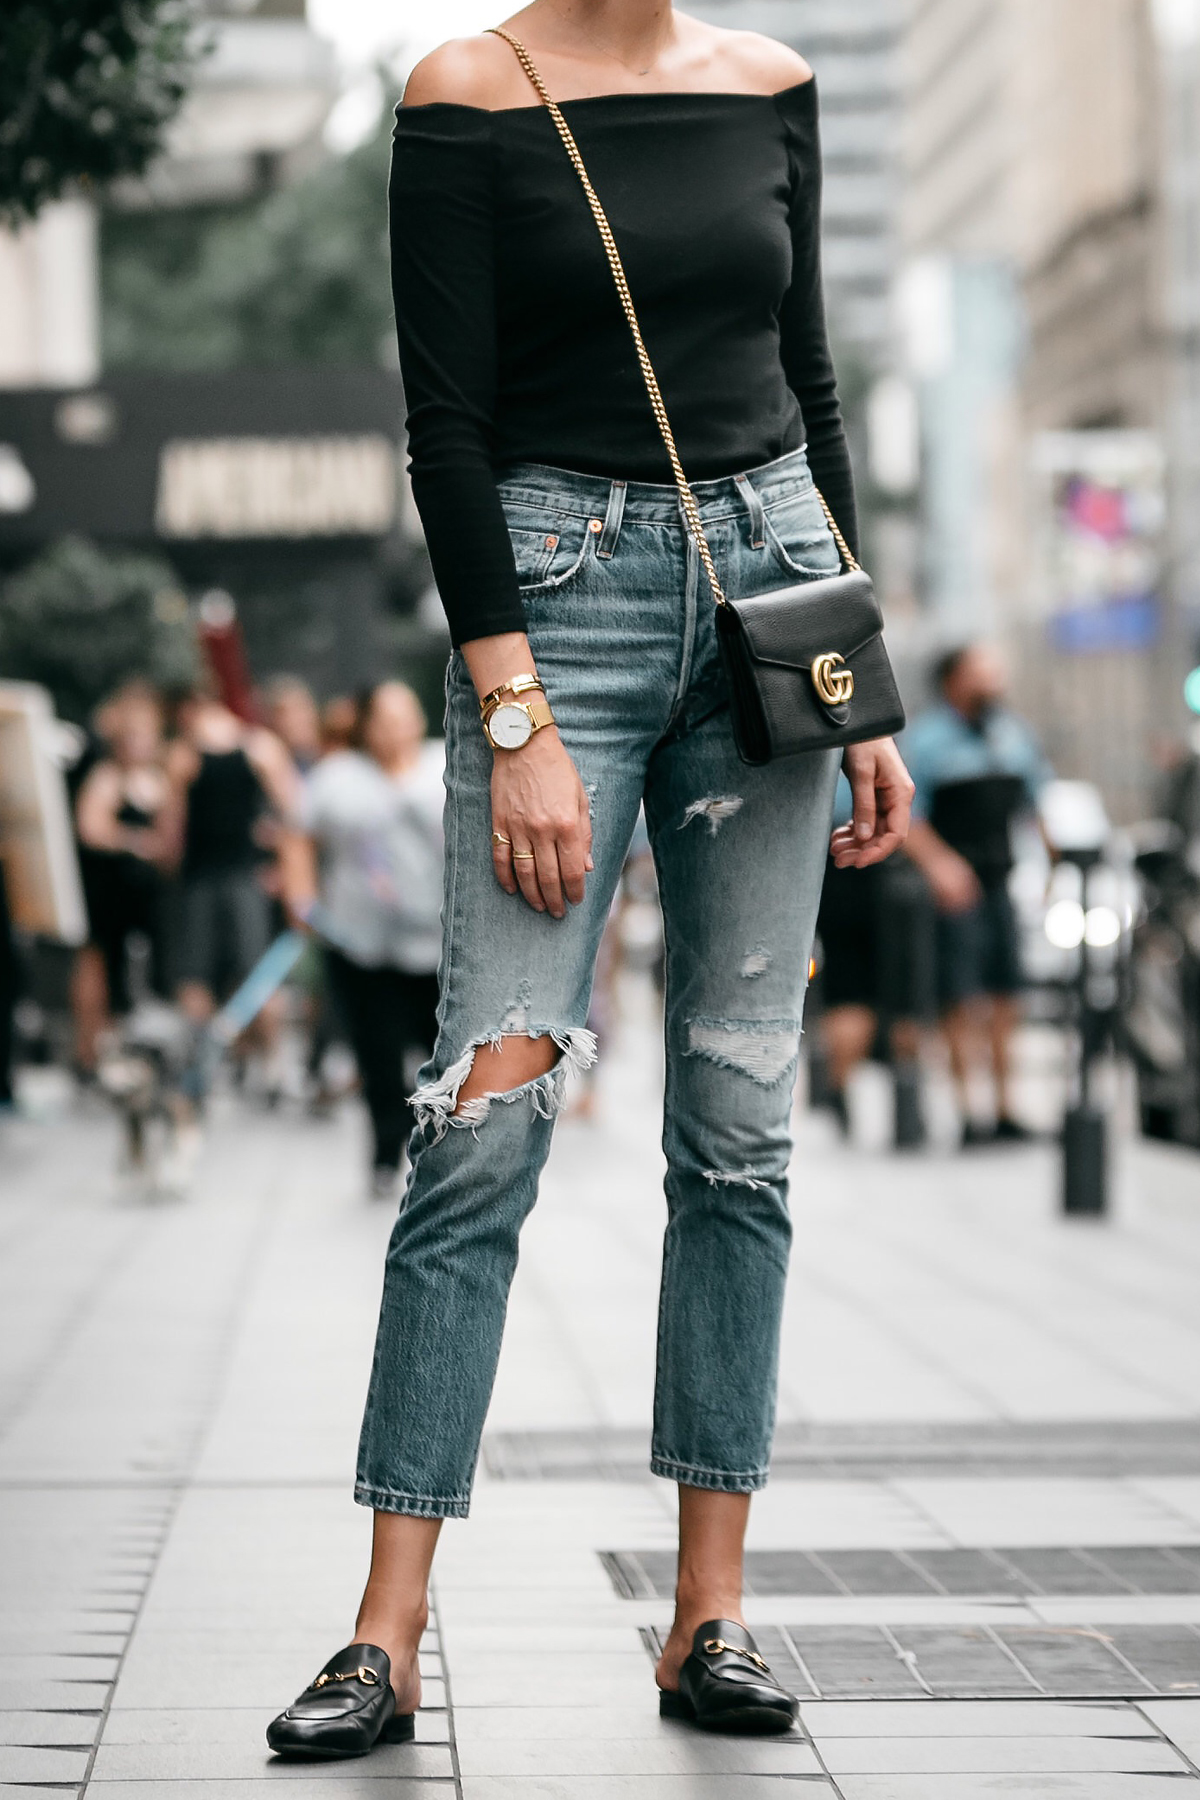 Jcrew black off the shoulder top Levis Denim Ripped Jeans Gucci Marmont Handbag Gucci Princetown Loafer Mules Fashion Jackson Dallas Blogger Fashion Blogger Street Style